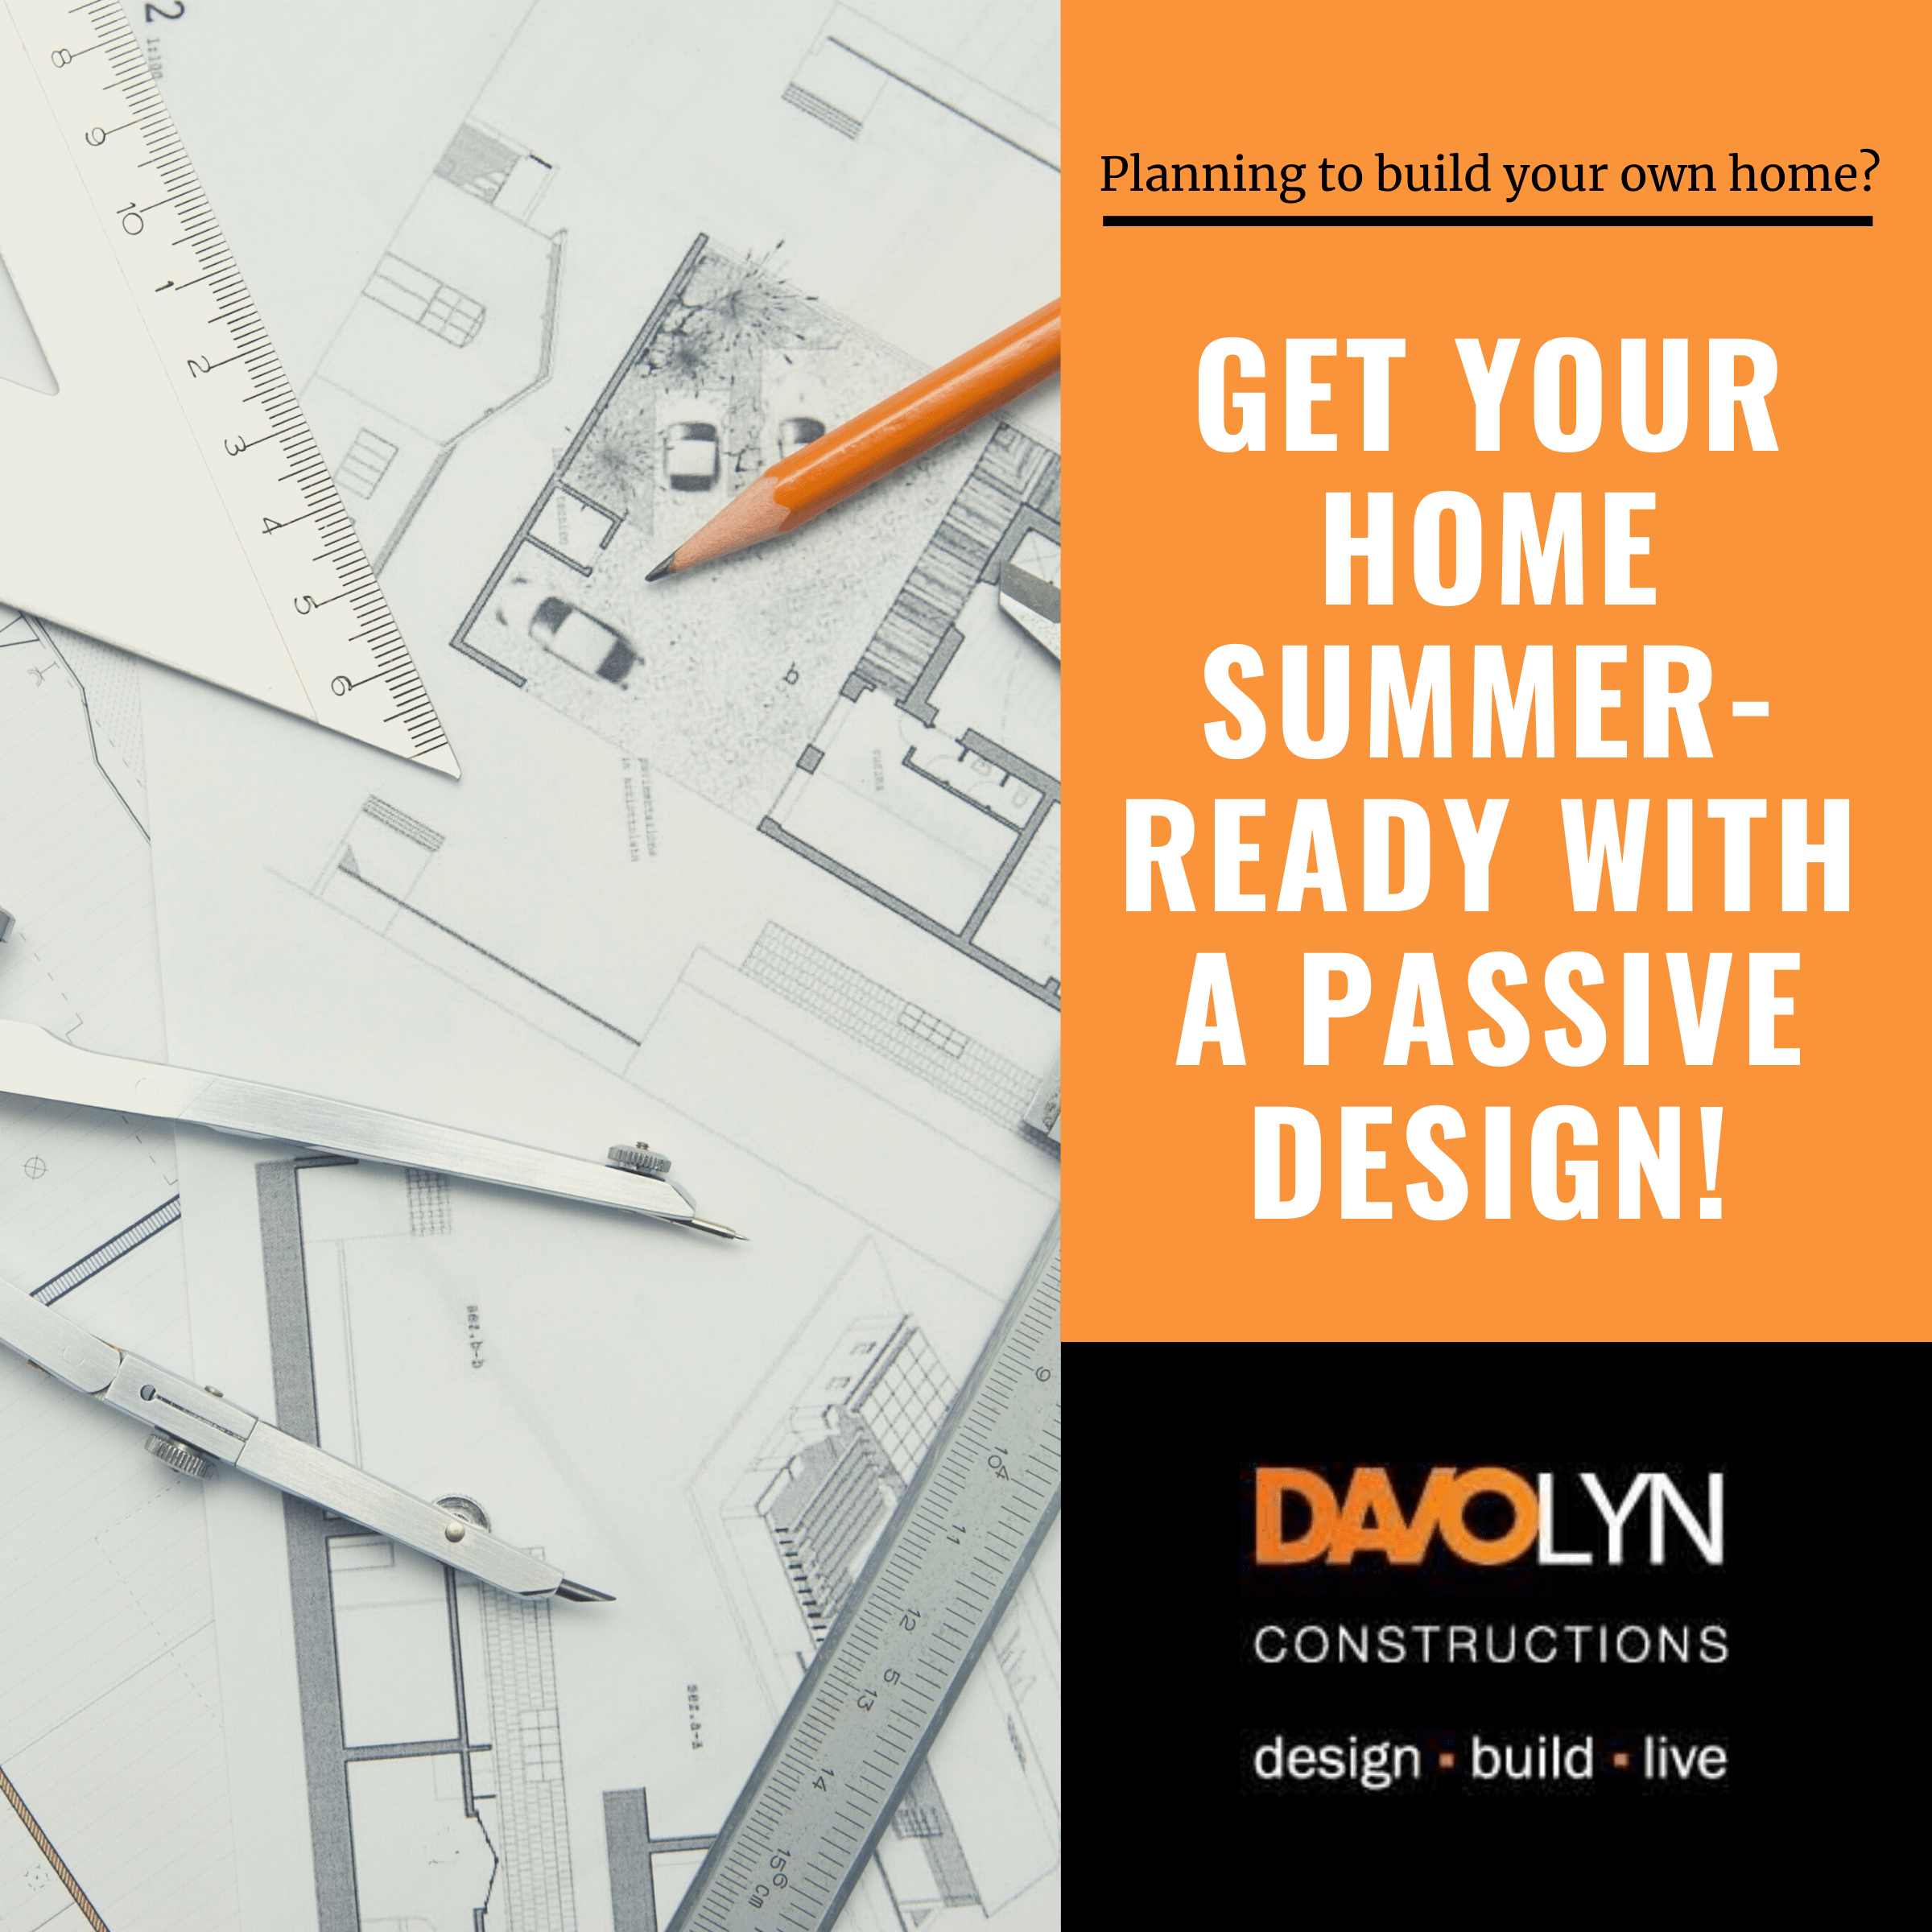 Get your Home Summer-ready with a Passive Design!